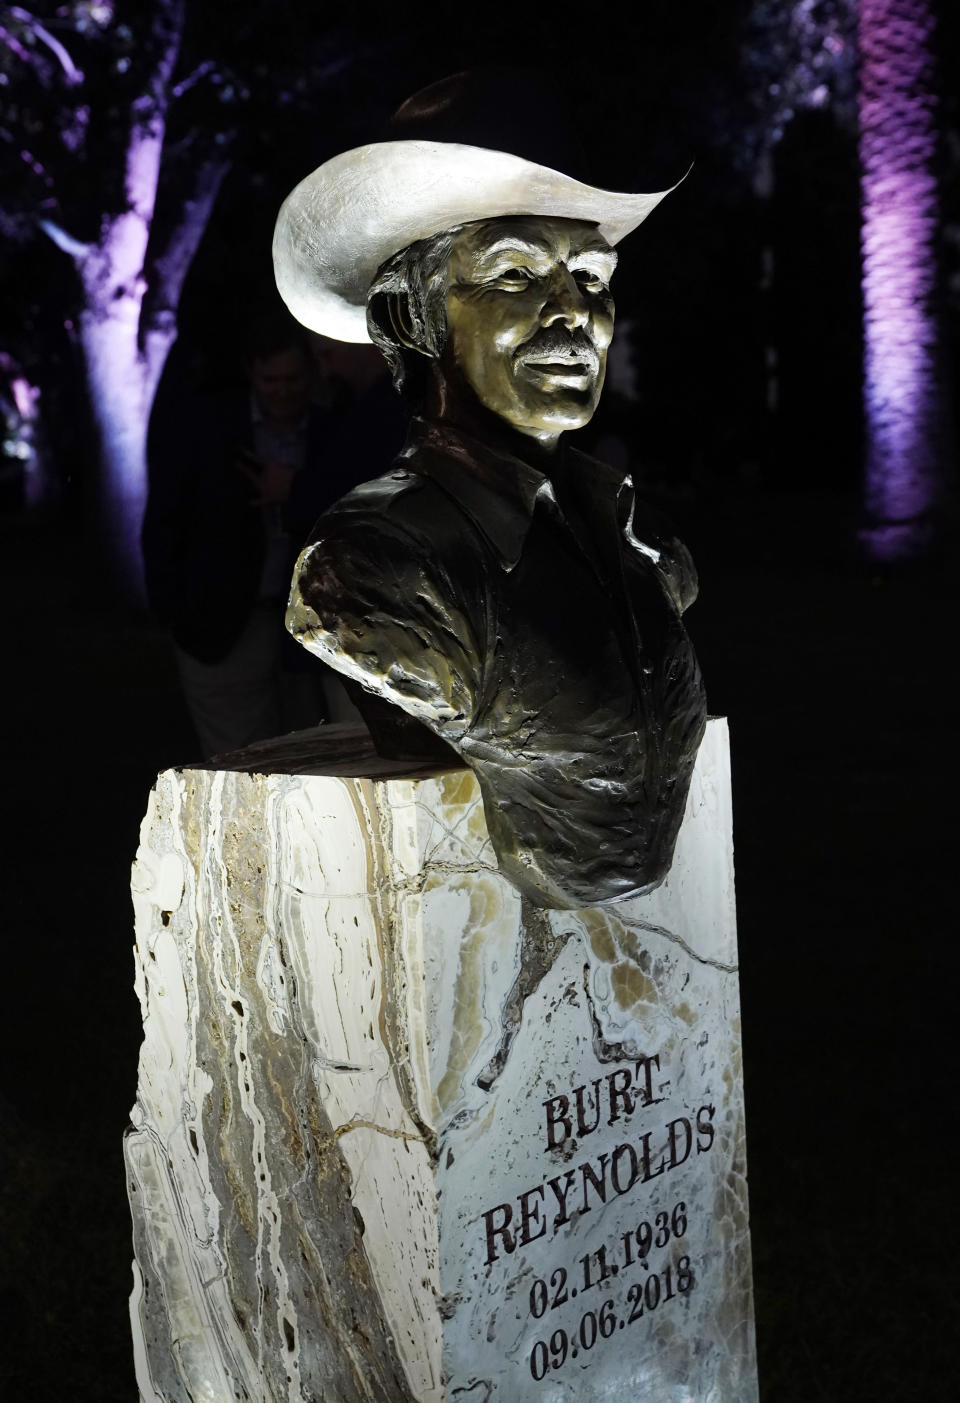 A memorial sculpture of the late actor Burt Reynolds is pictured following its unveiling at a ceremony at Hollywood Forever Cemetery, Monday, Sept. 20, 2021, in Los Angeles. Reynolds died in 2018 at the age of 82. (AP Photo/Chris Pizzello)